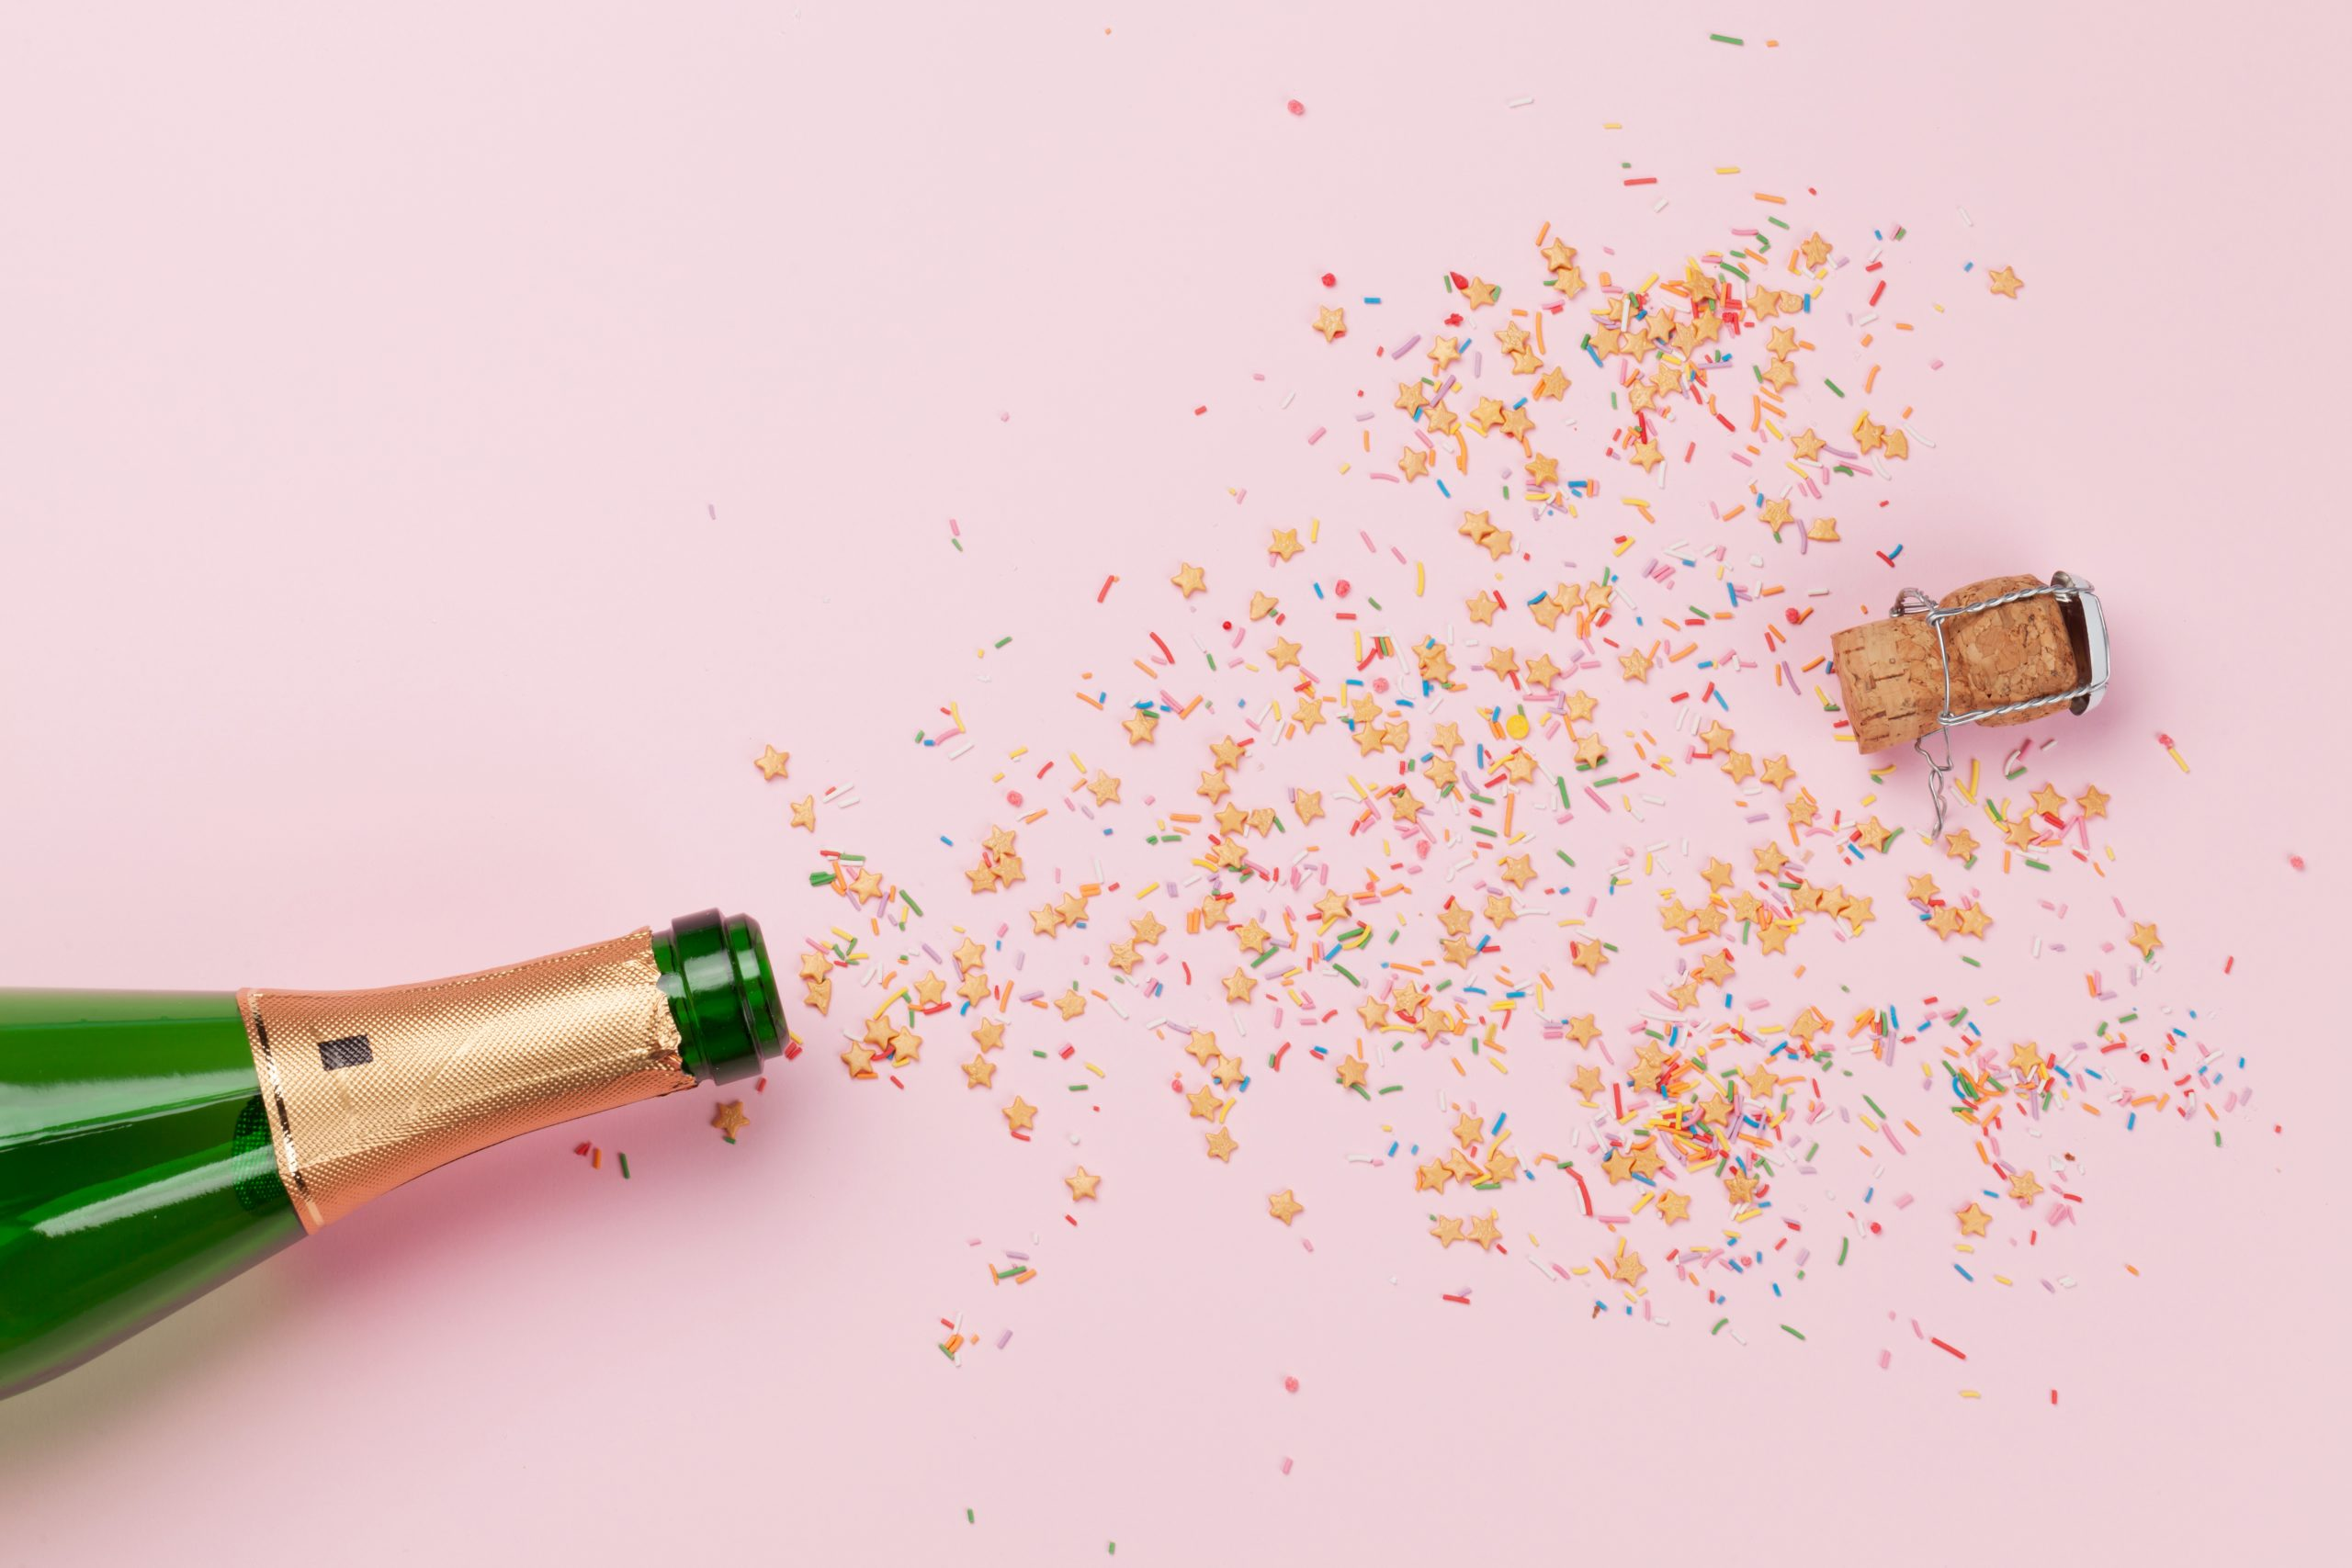 Here's Cheers - gluten-free alcohol guide champagne bottle popping with confetti on pink background